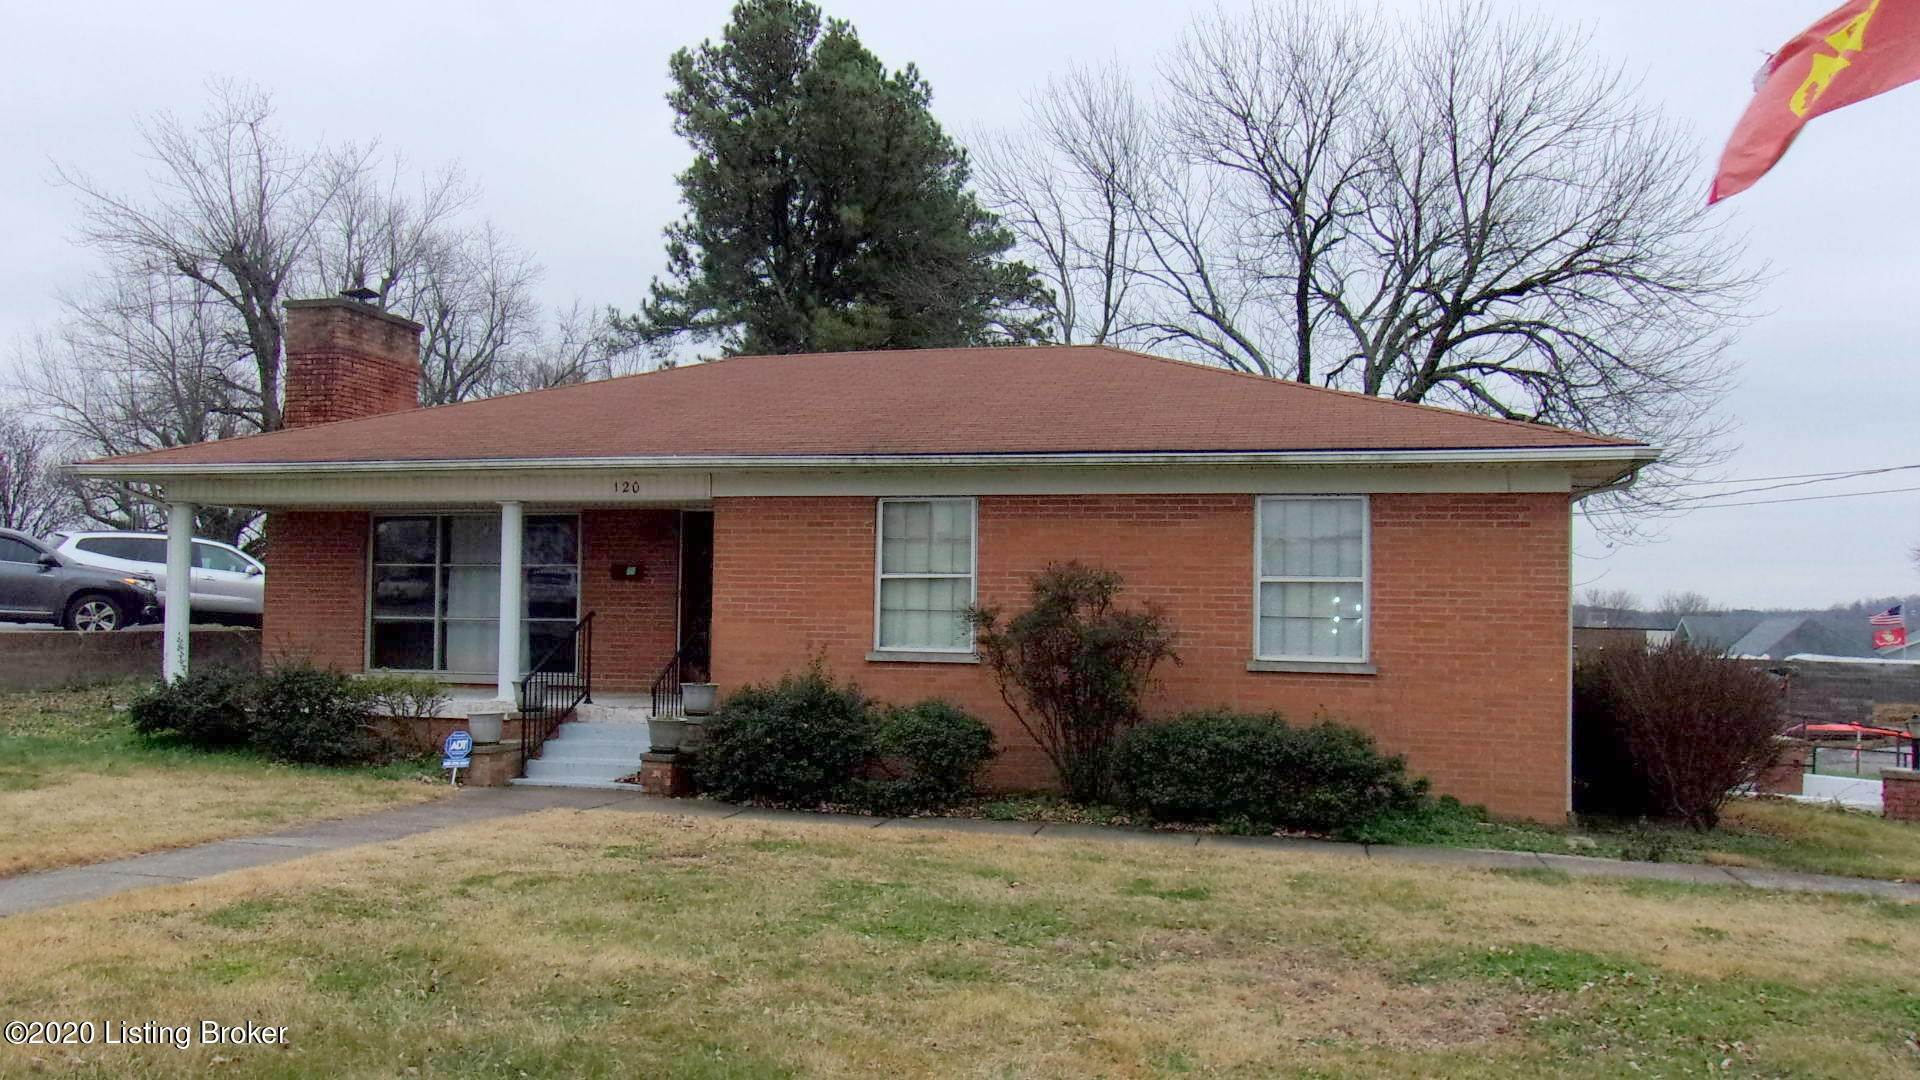 Single Family Homes for Sale at 120 E White Oak Street Leitchfield, Kentucky 42754 United States